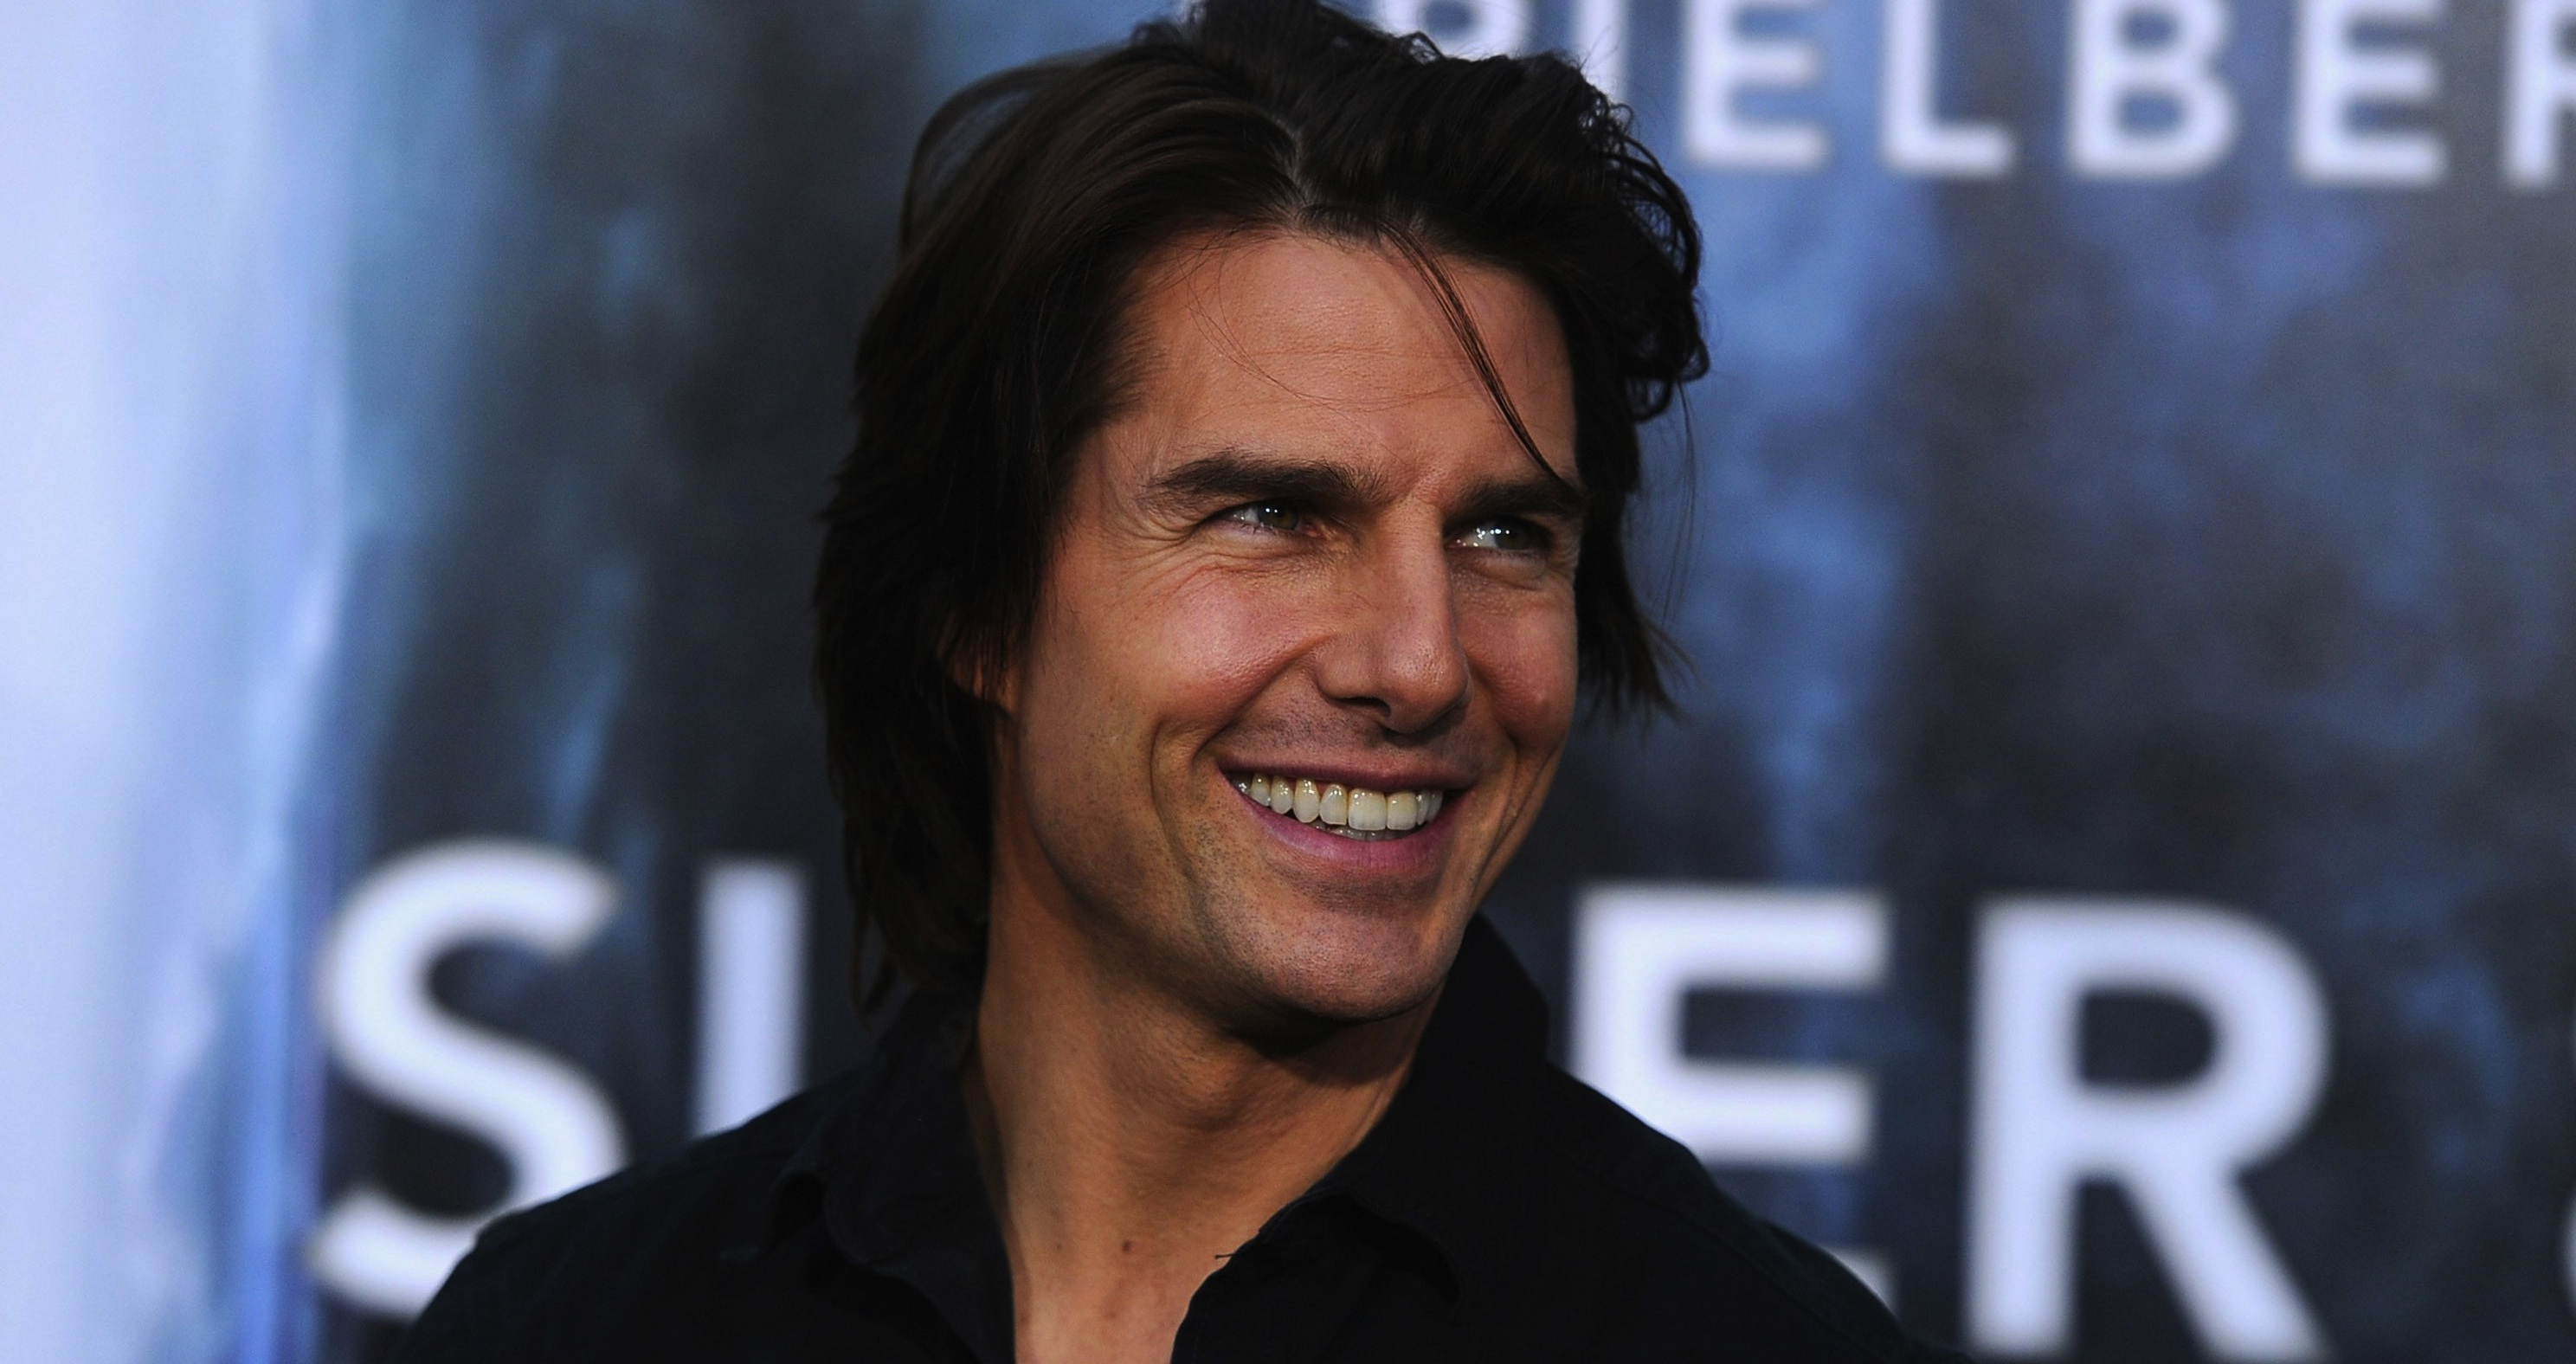 Tom Cruise Wallpapers Hq